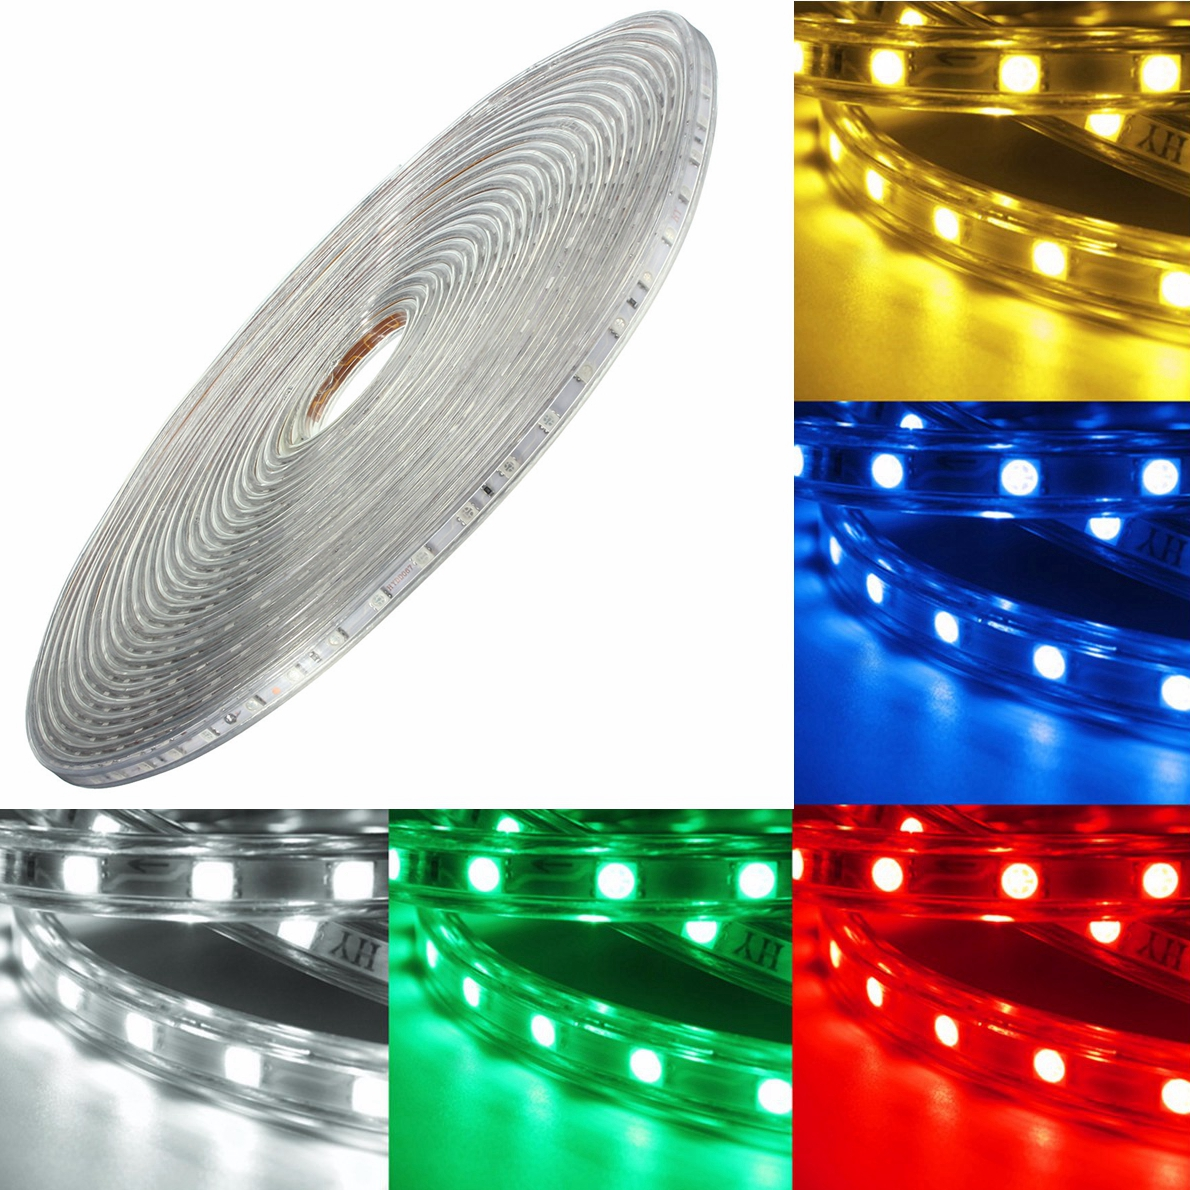 Led Waterproof Strip Lights White Flexible Rope Lighting: 220V 14M 5050 LED SMD Outdoor Waterproof Flexible Tape